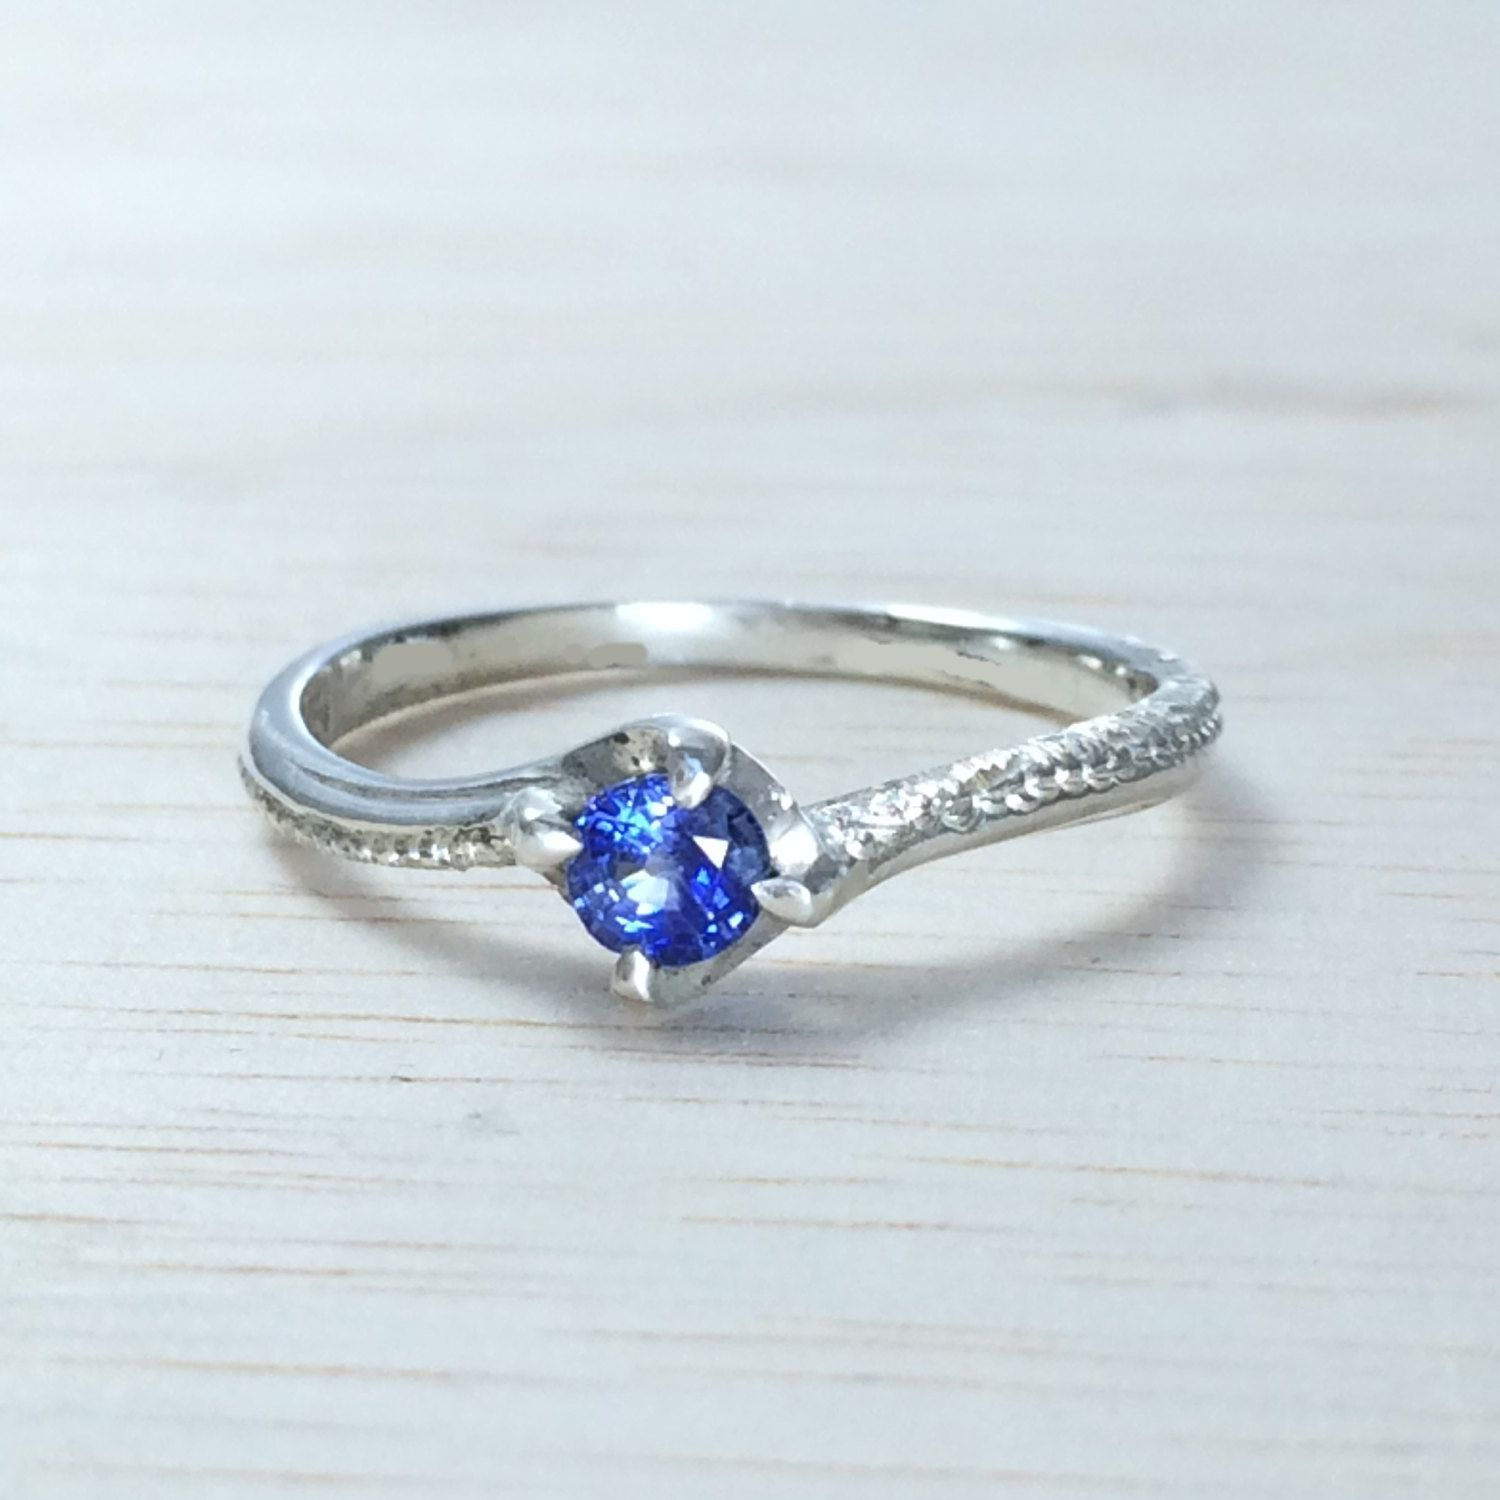 sapphire subsampling vintage boodles ring oval jewellery the false scale diamonds shop upscale rings new engagement crop product blue